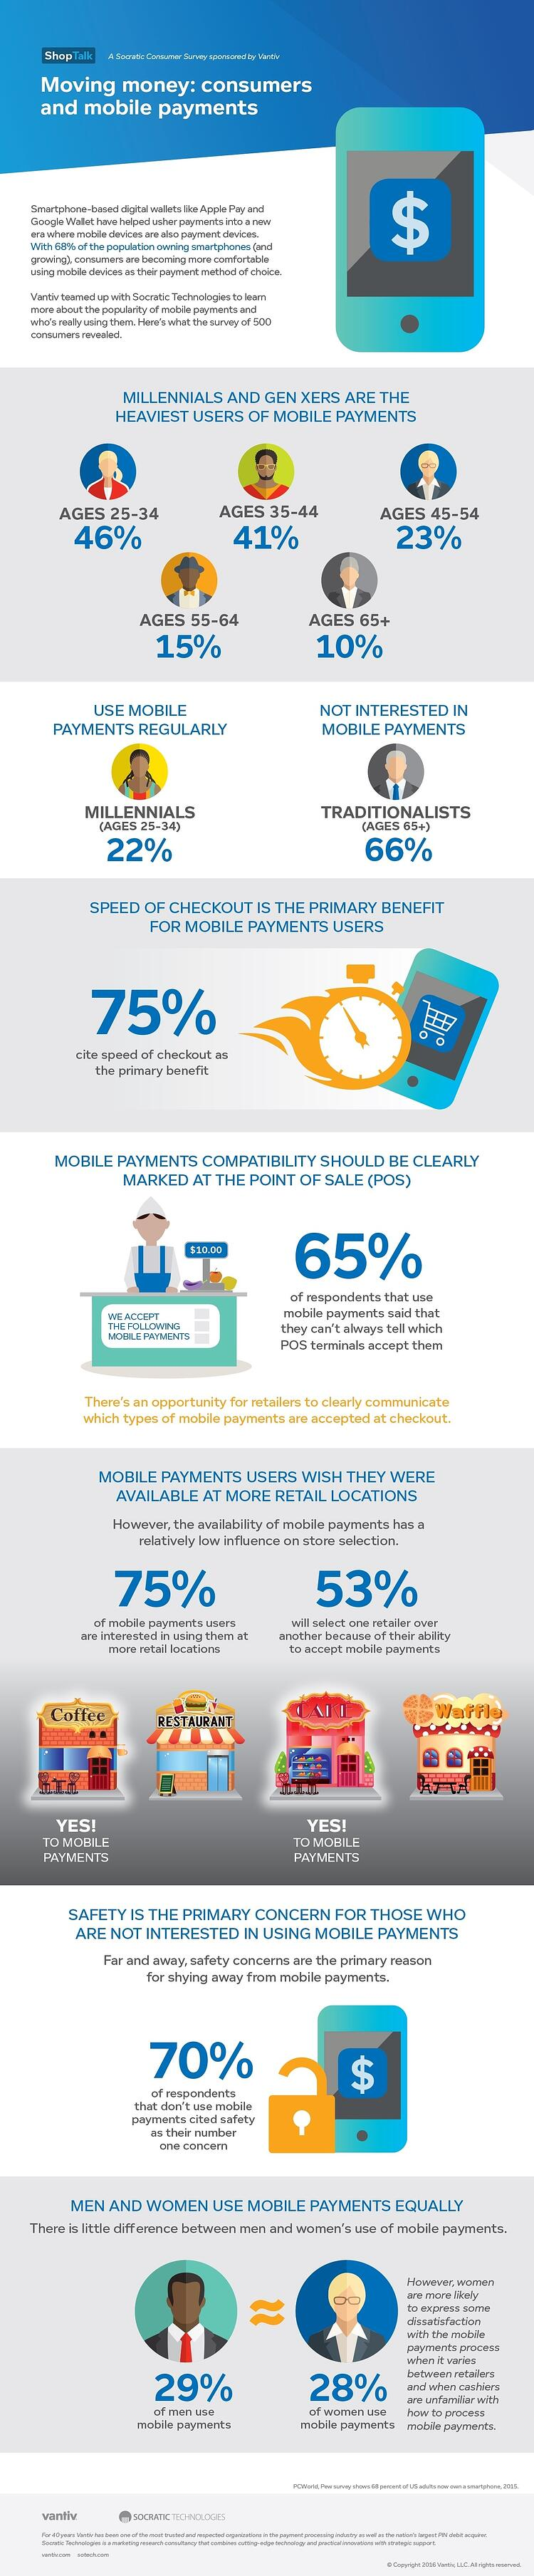 Moving Money: Consumers & Mobile Payments